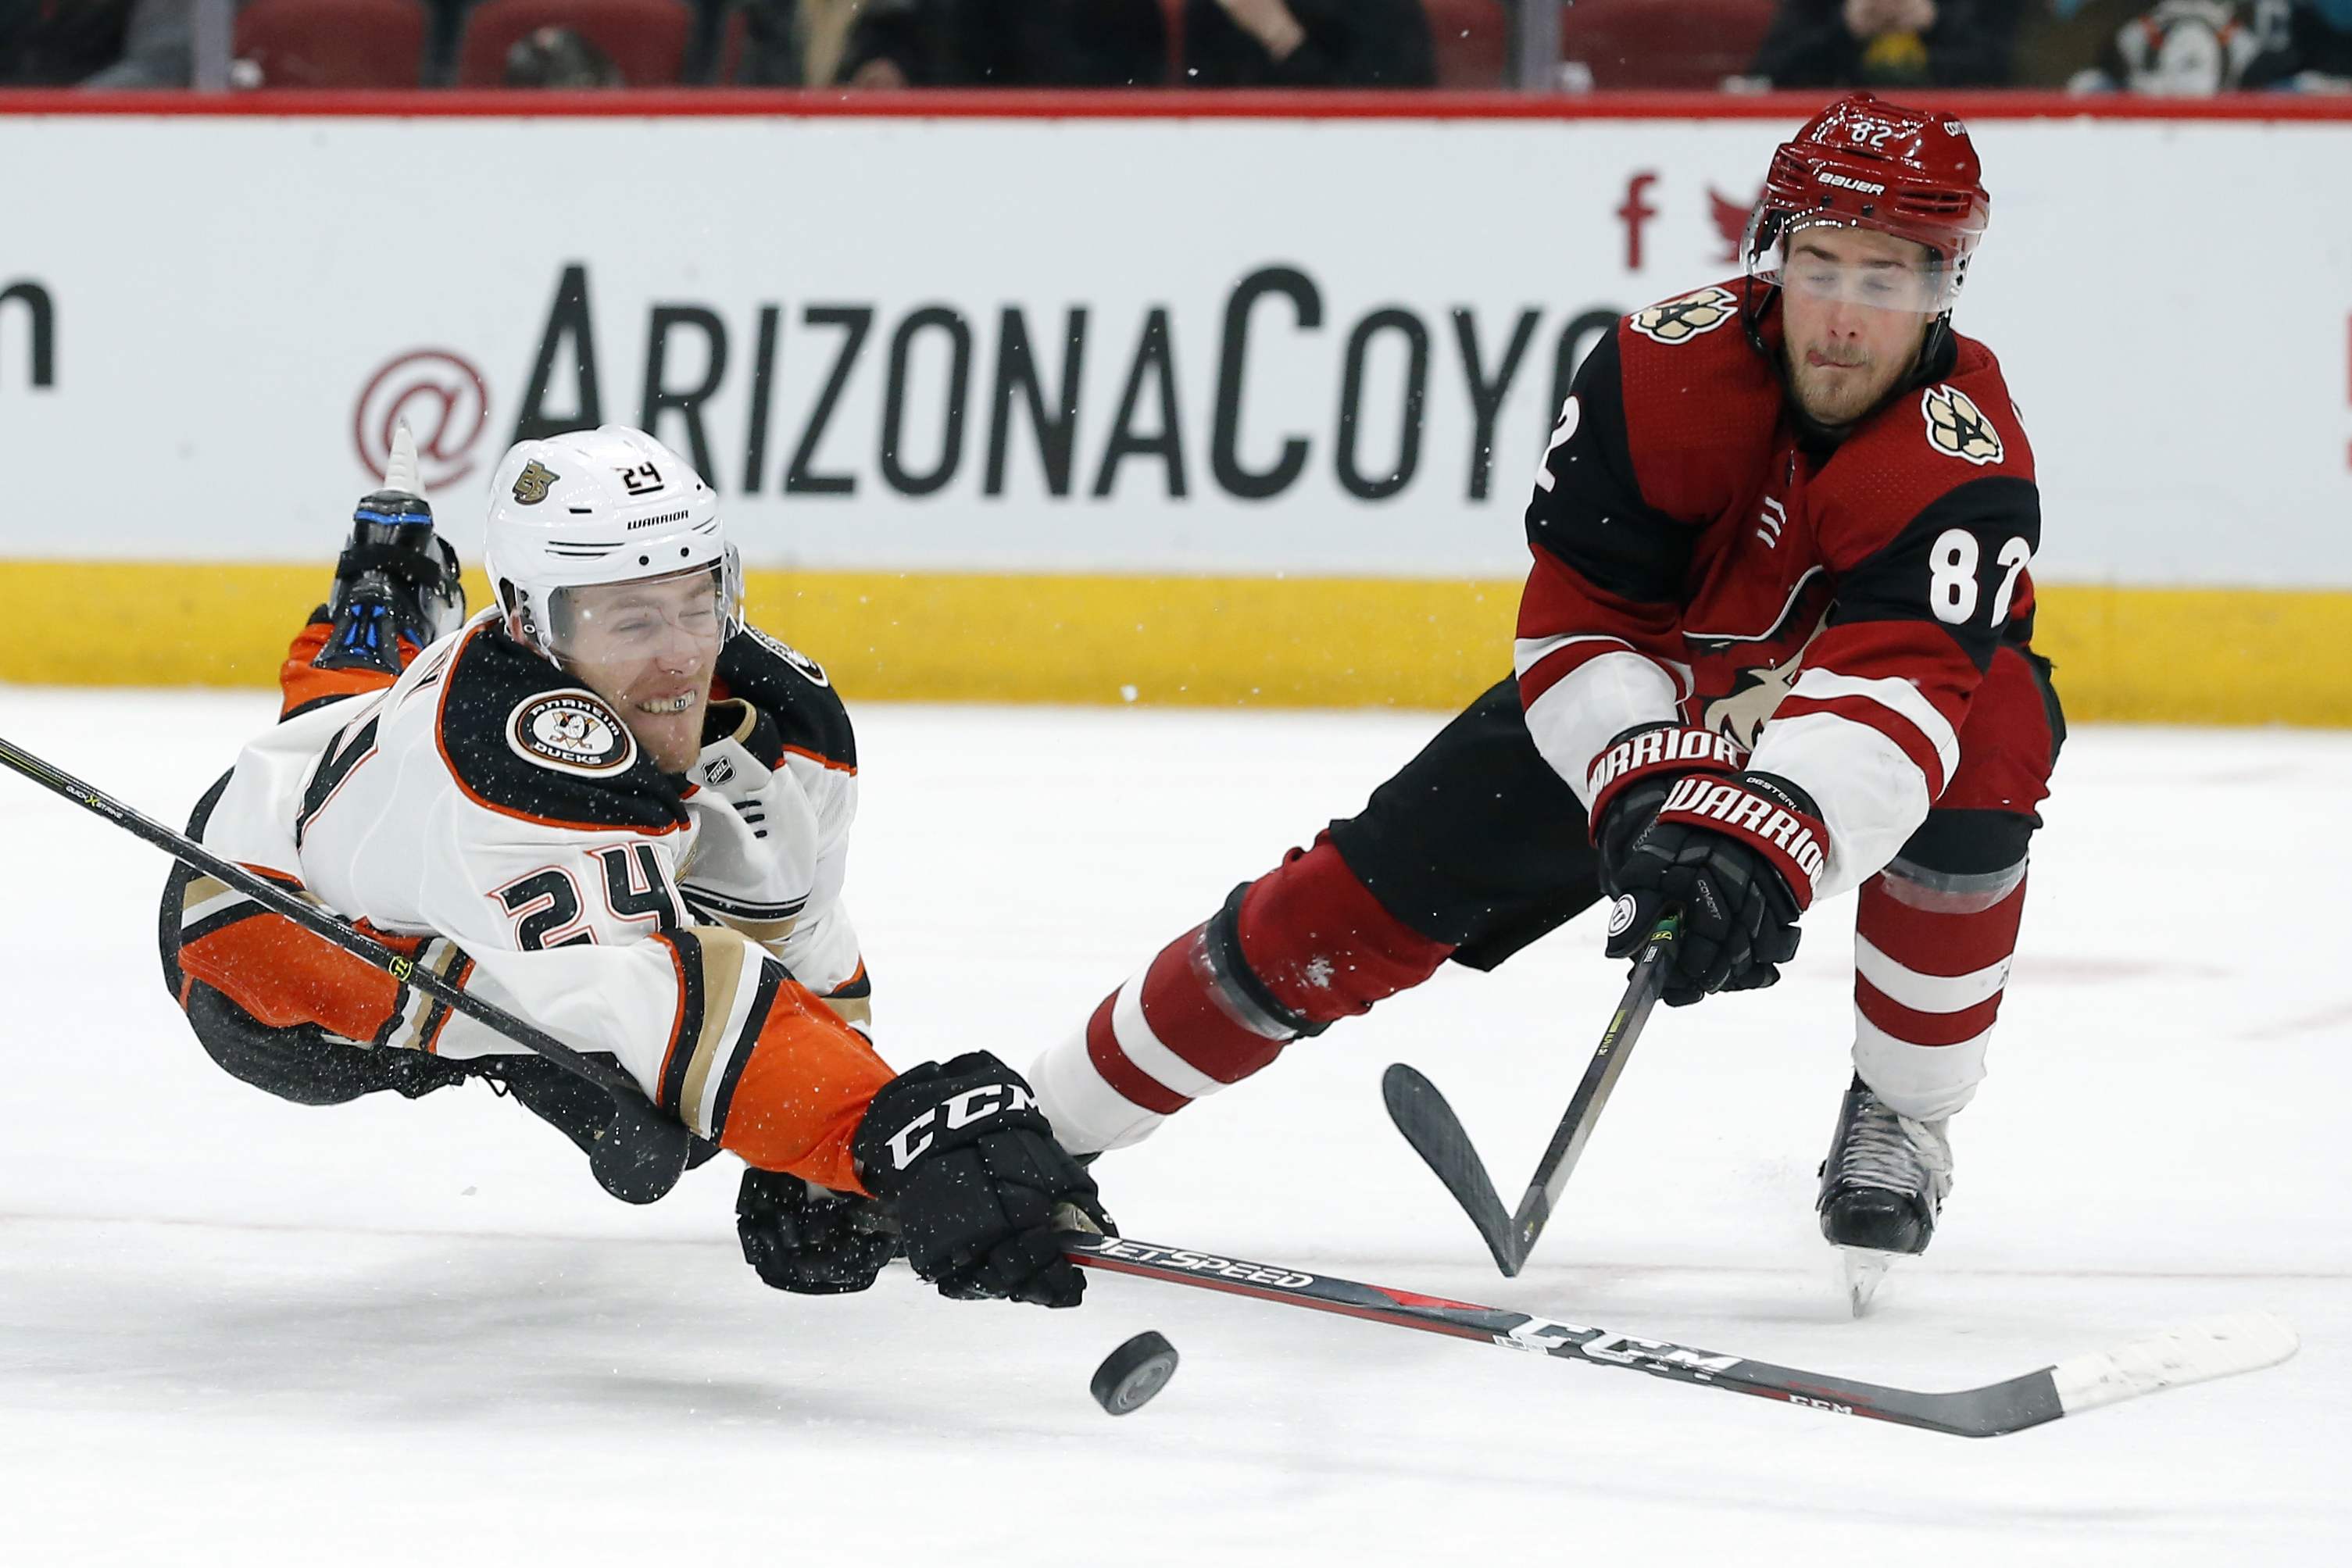 Hinostroza's hat trick leads Coyotes to 6-1 win over Ducks